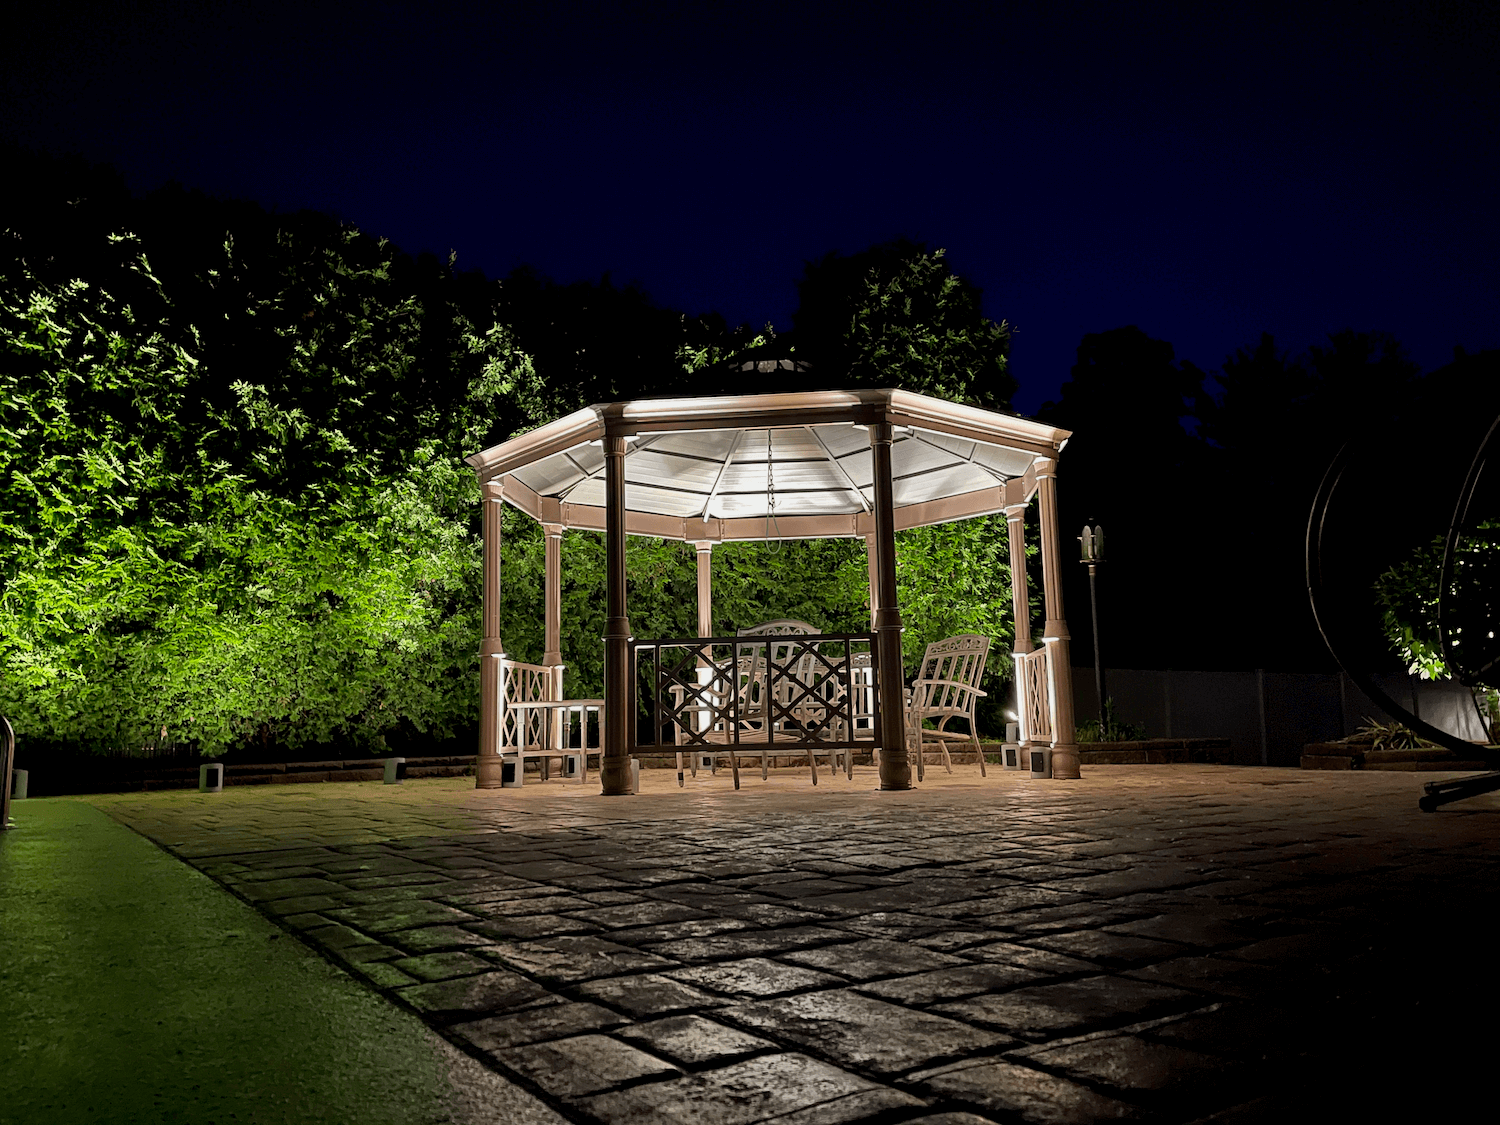 A gazebo with landscpae lighting to see at night